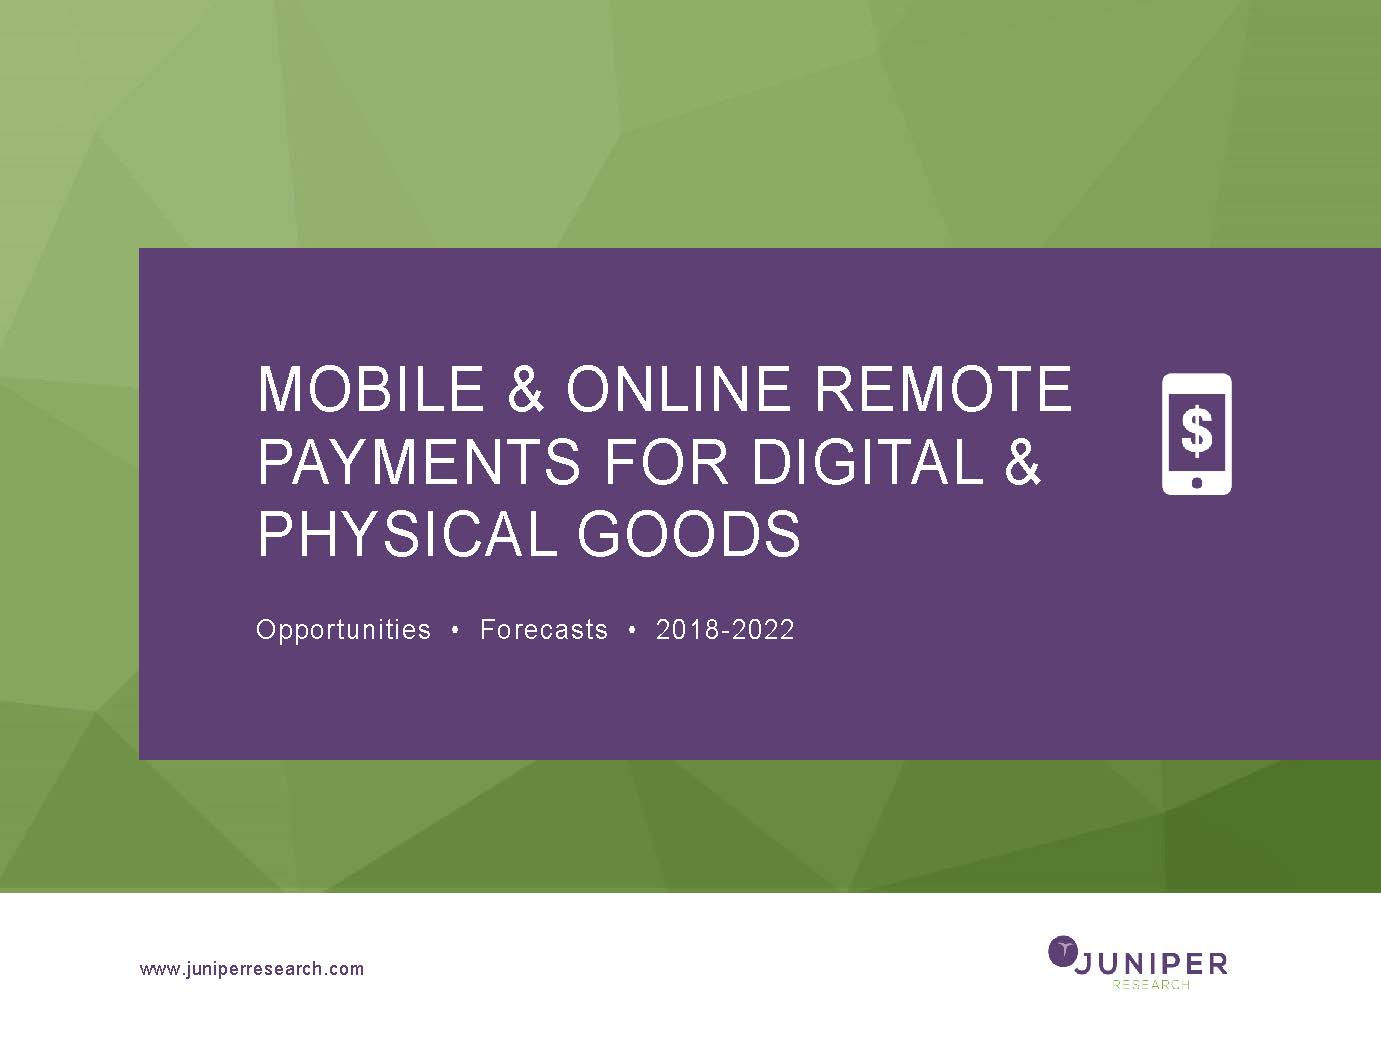 Mobile & Online Remote Payments for Digital & Physical Goods: Deep Dive Strategy & Competition 2018-2022